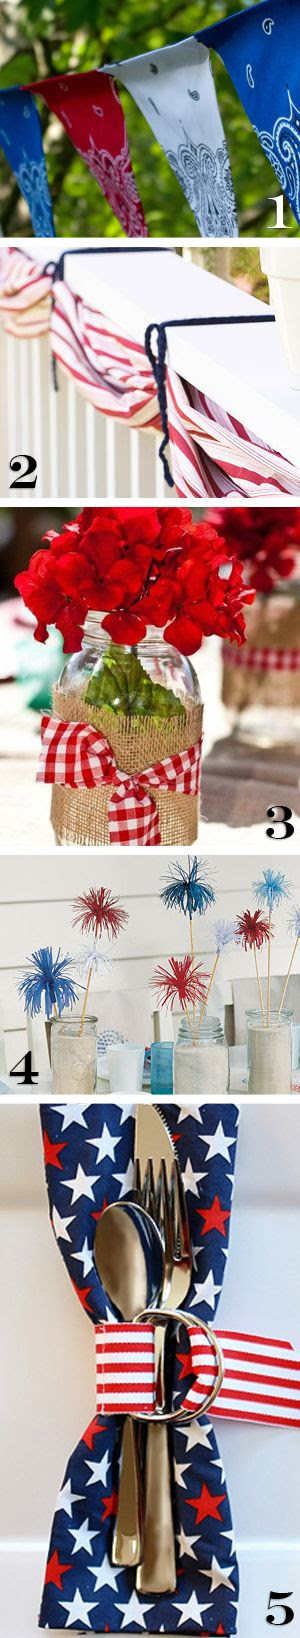 Patriotic Decorations for BBQ